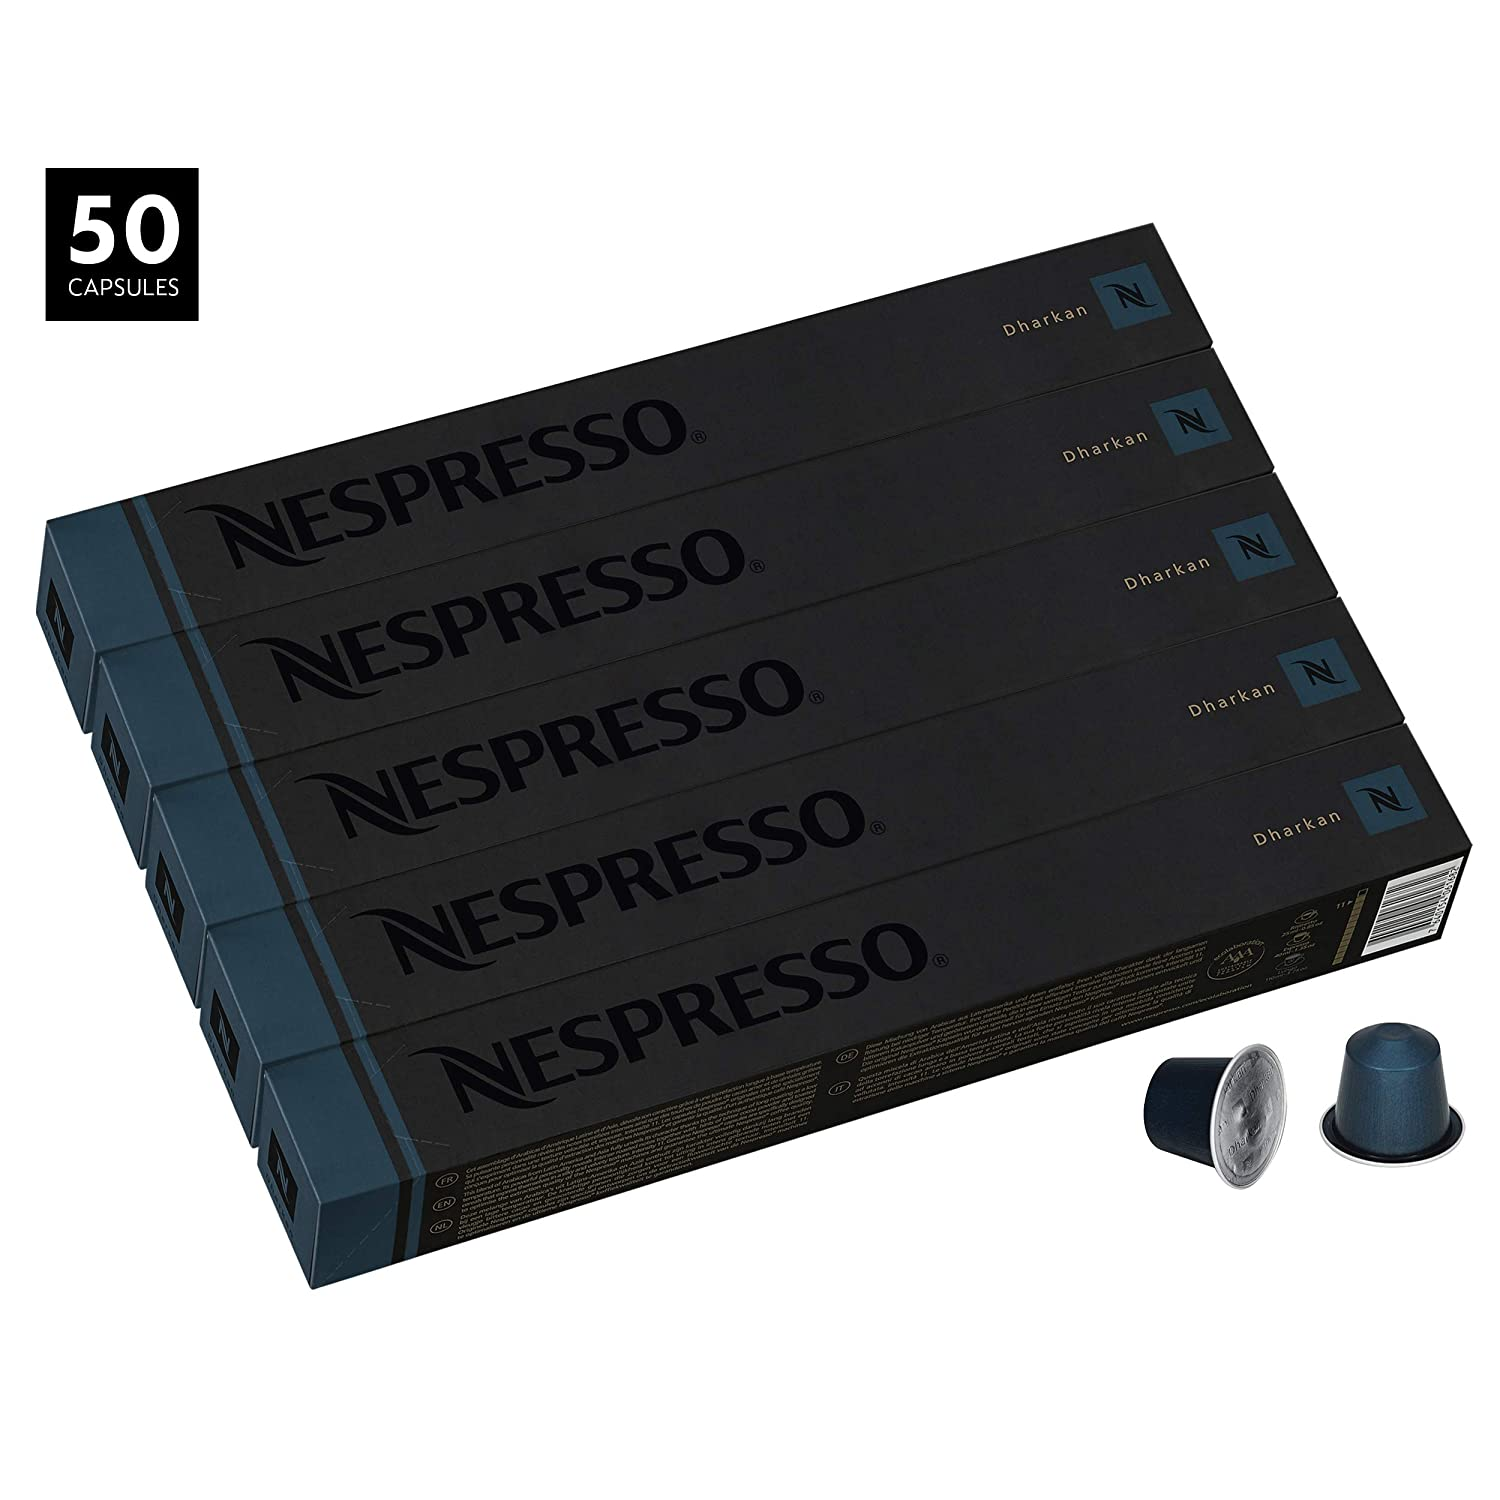 Nespresso Dharkan Intenso OriginalLine Capsules, 50 Count Espresso Pods, Intensity 11 Blend, Long Roasted with Latin American & Asian Coffee Flavors